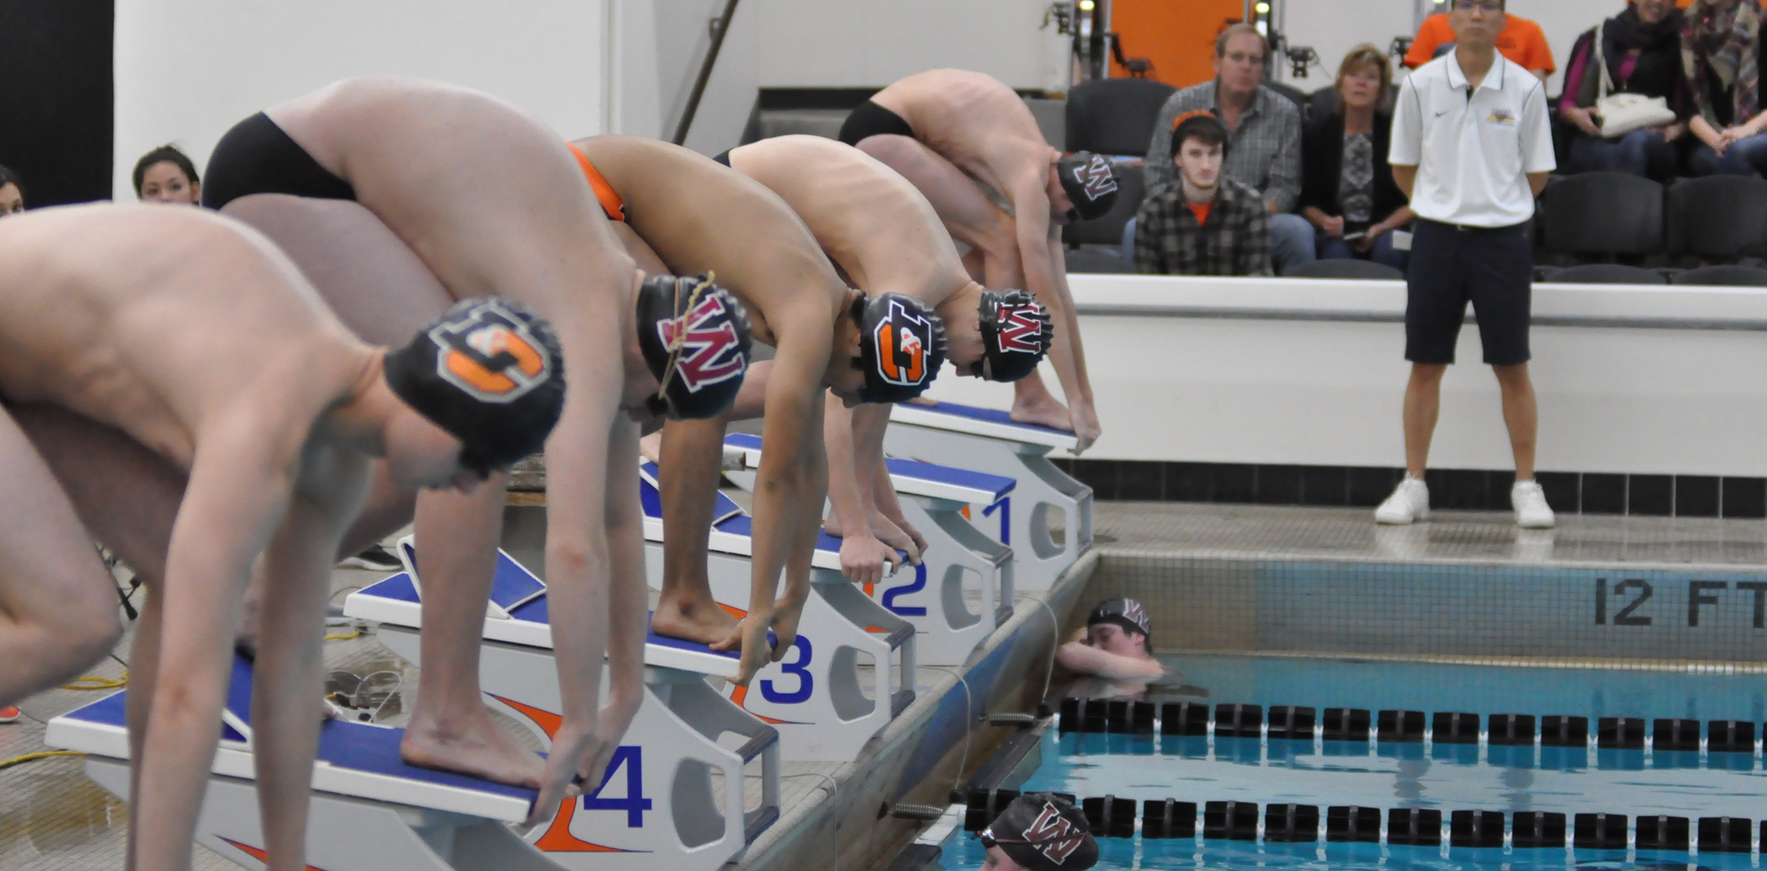 Lewis & Clark hosts first meet of the season against Whitworth